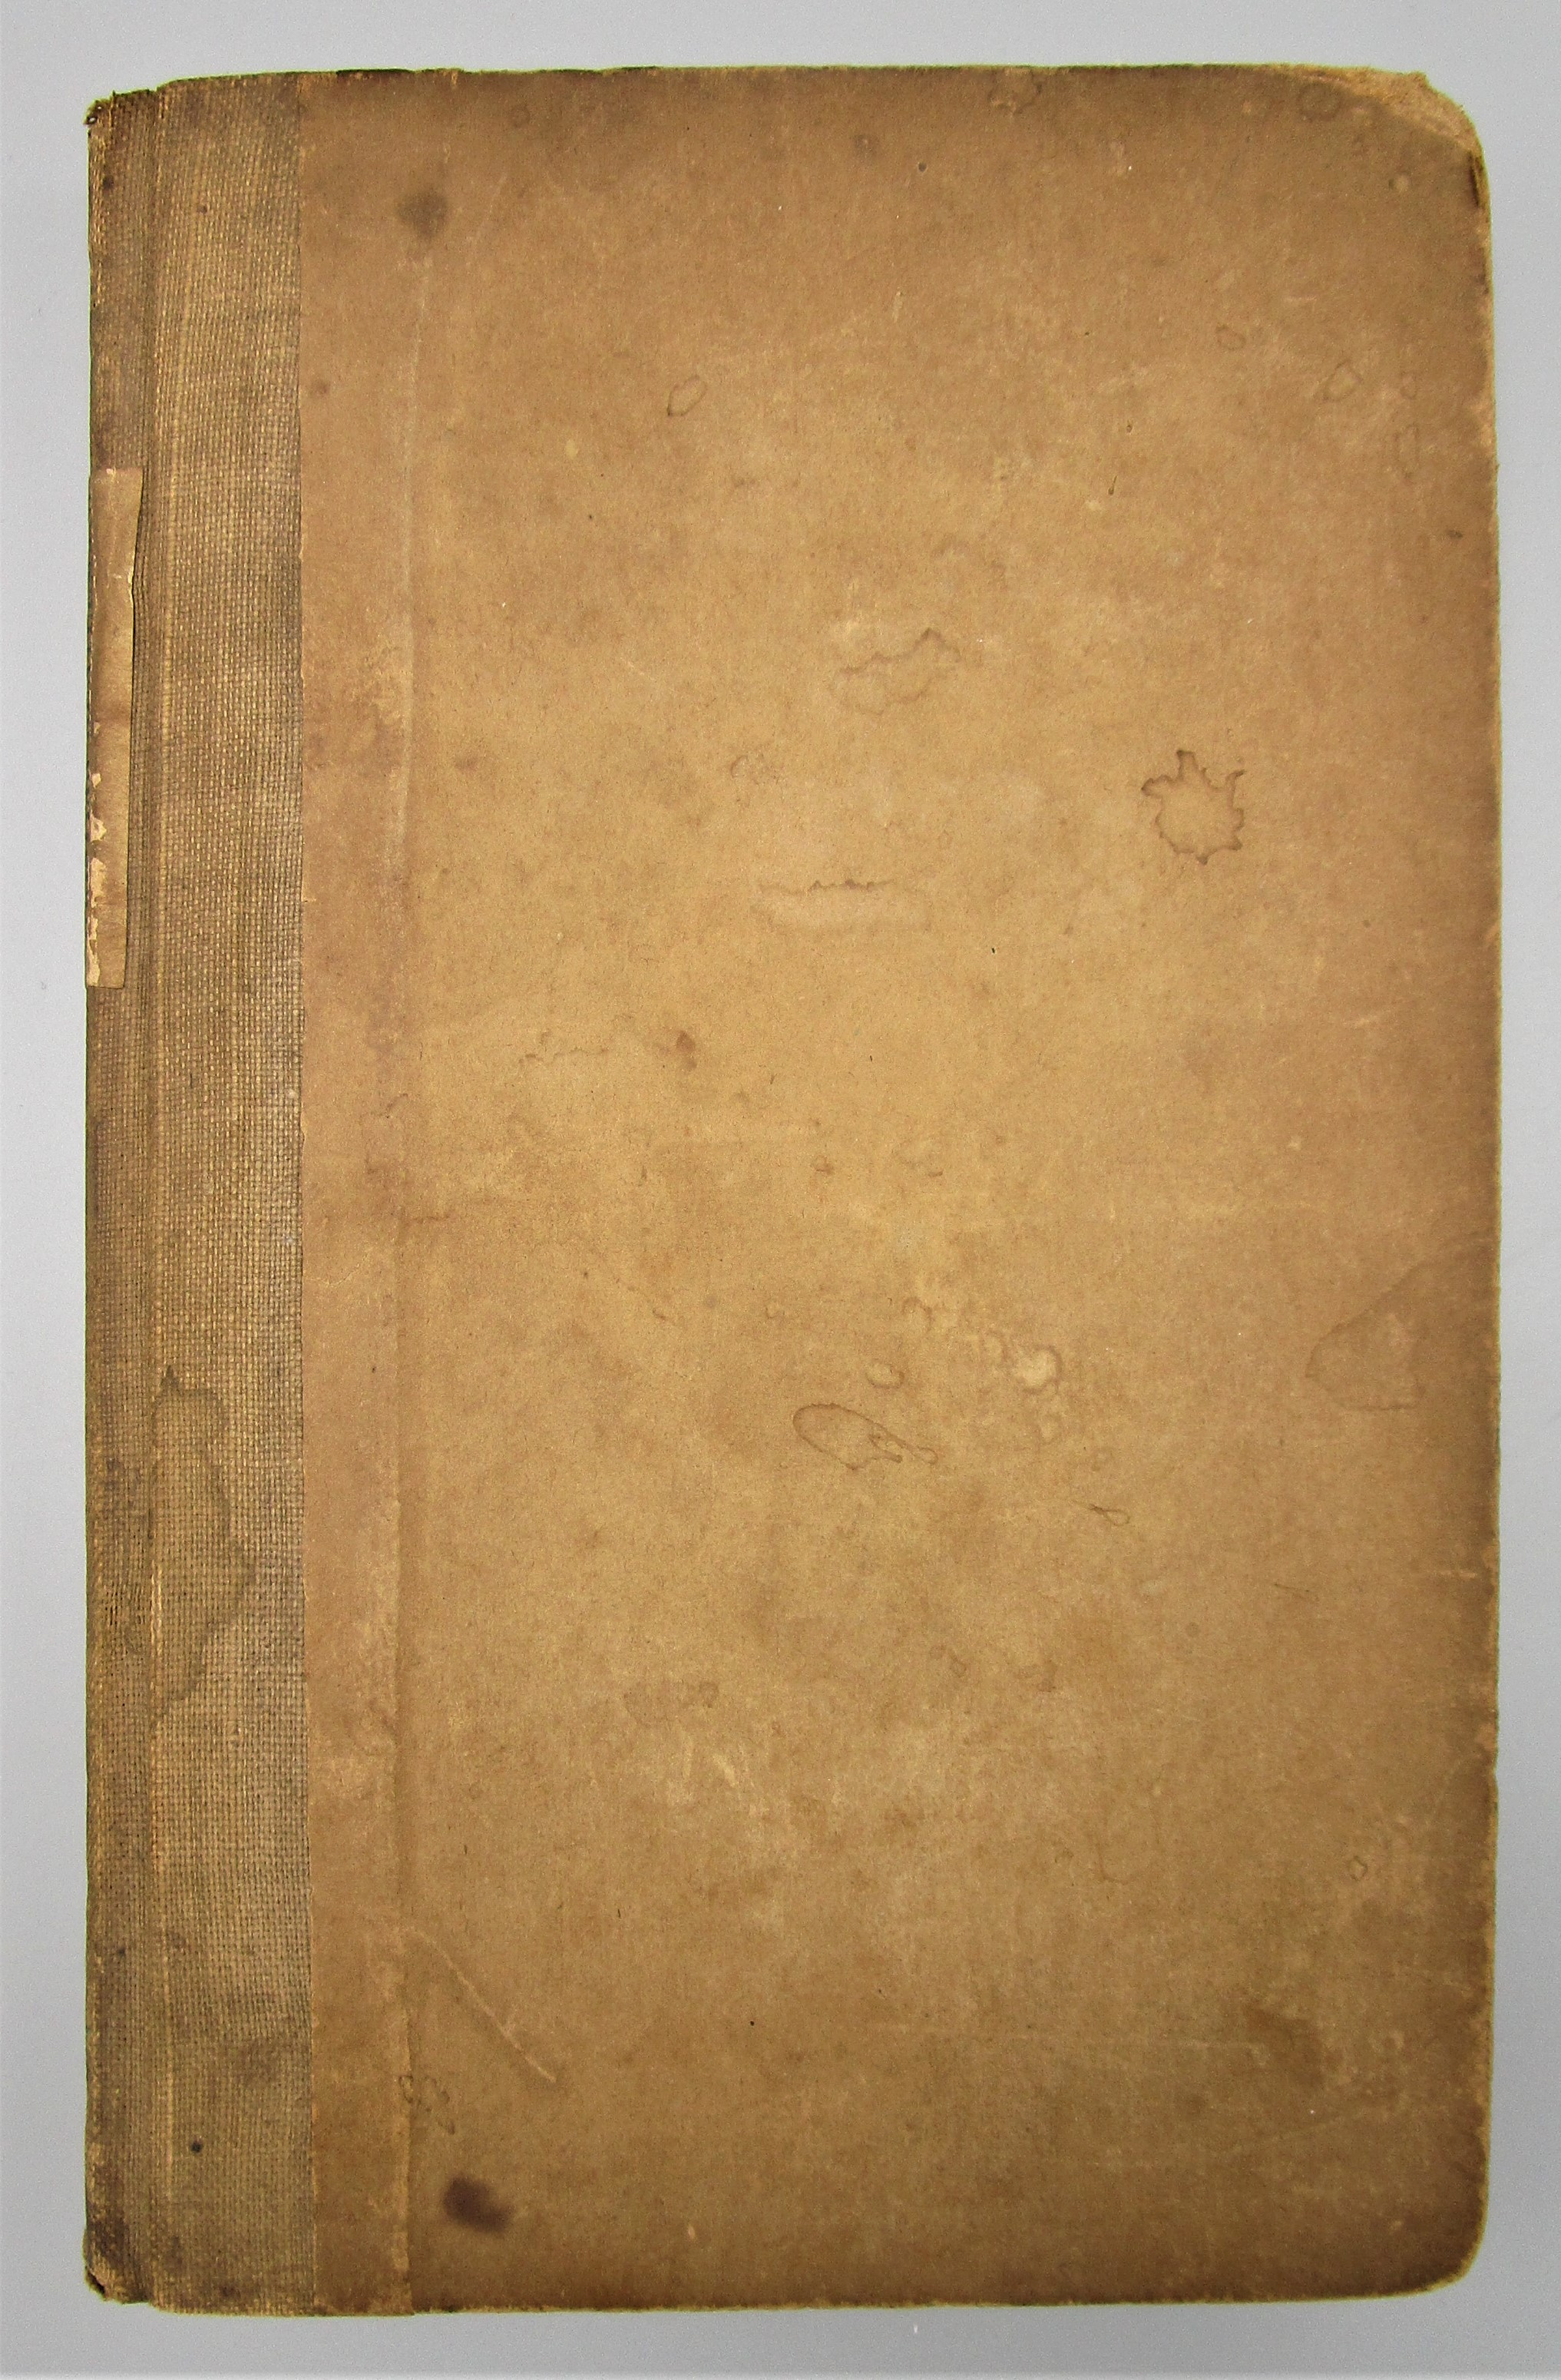 PORTRAITURE OF A CHRISTIAN GENTLEMAN, by W. Roberts - 1831 [1st ED]